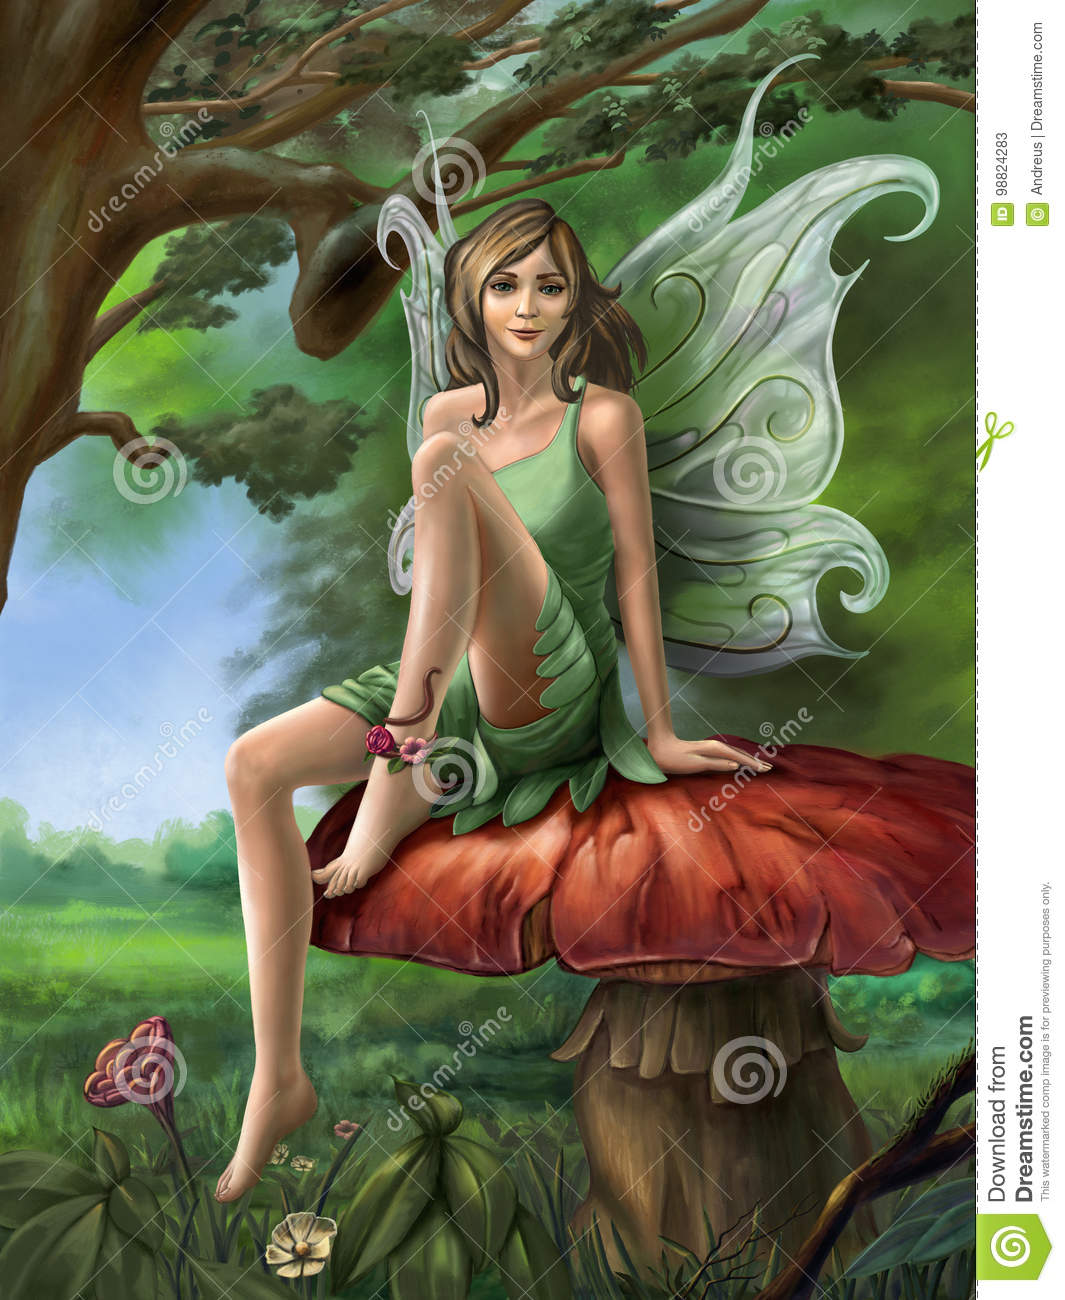 Forest fairy resting on a mushroom